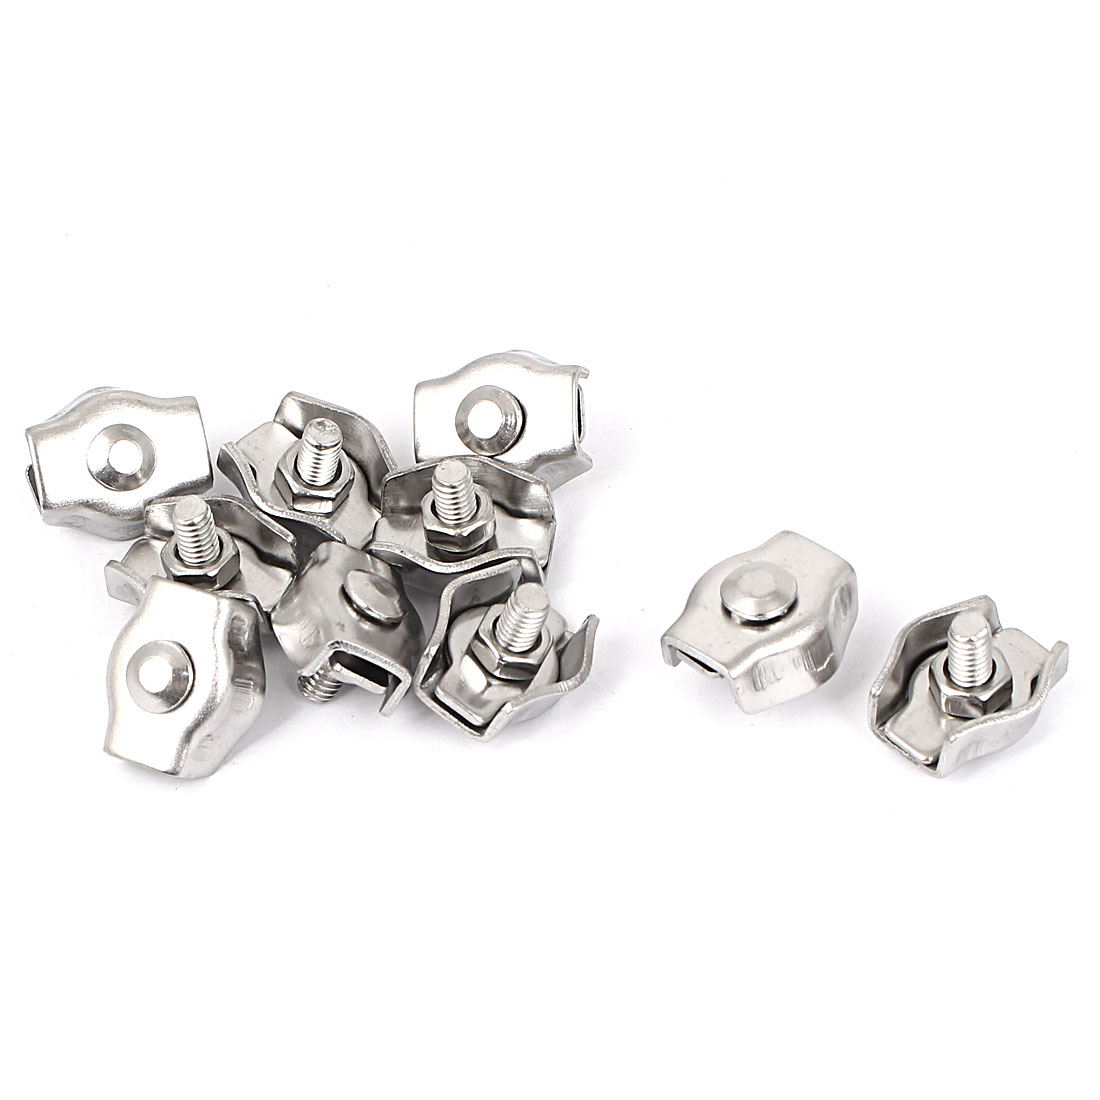 M3 Stainless Steel Simplex Wire Rope Clip Cable Clamps 10 Pcs